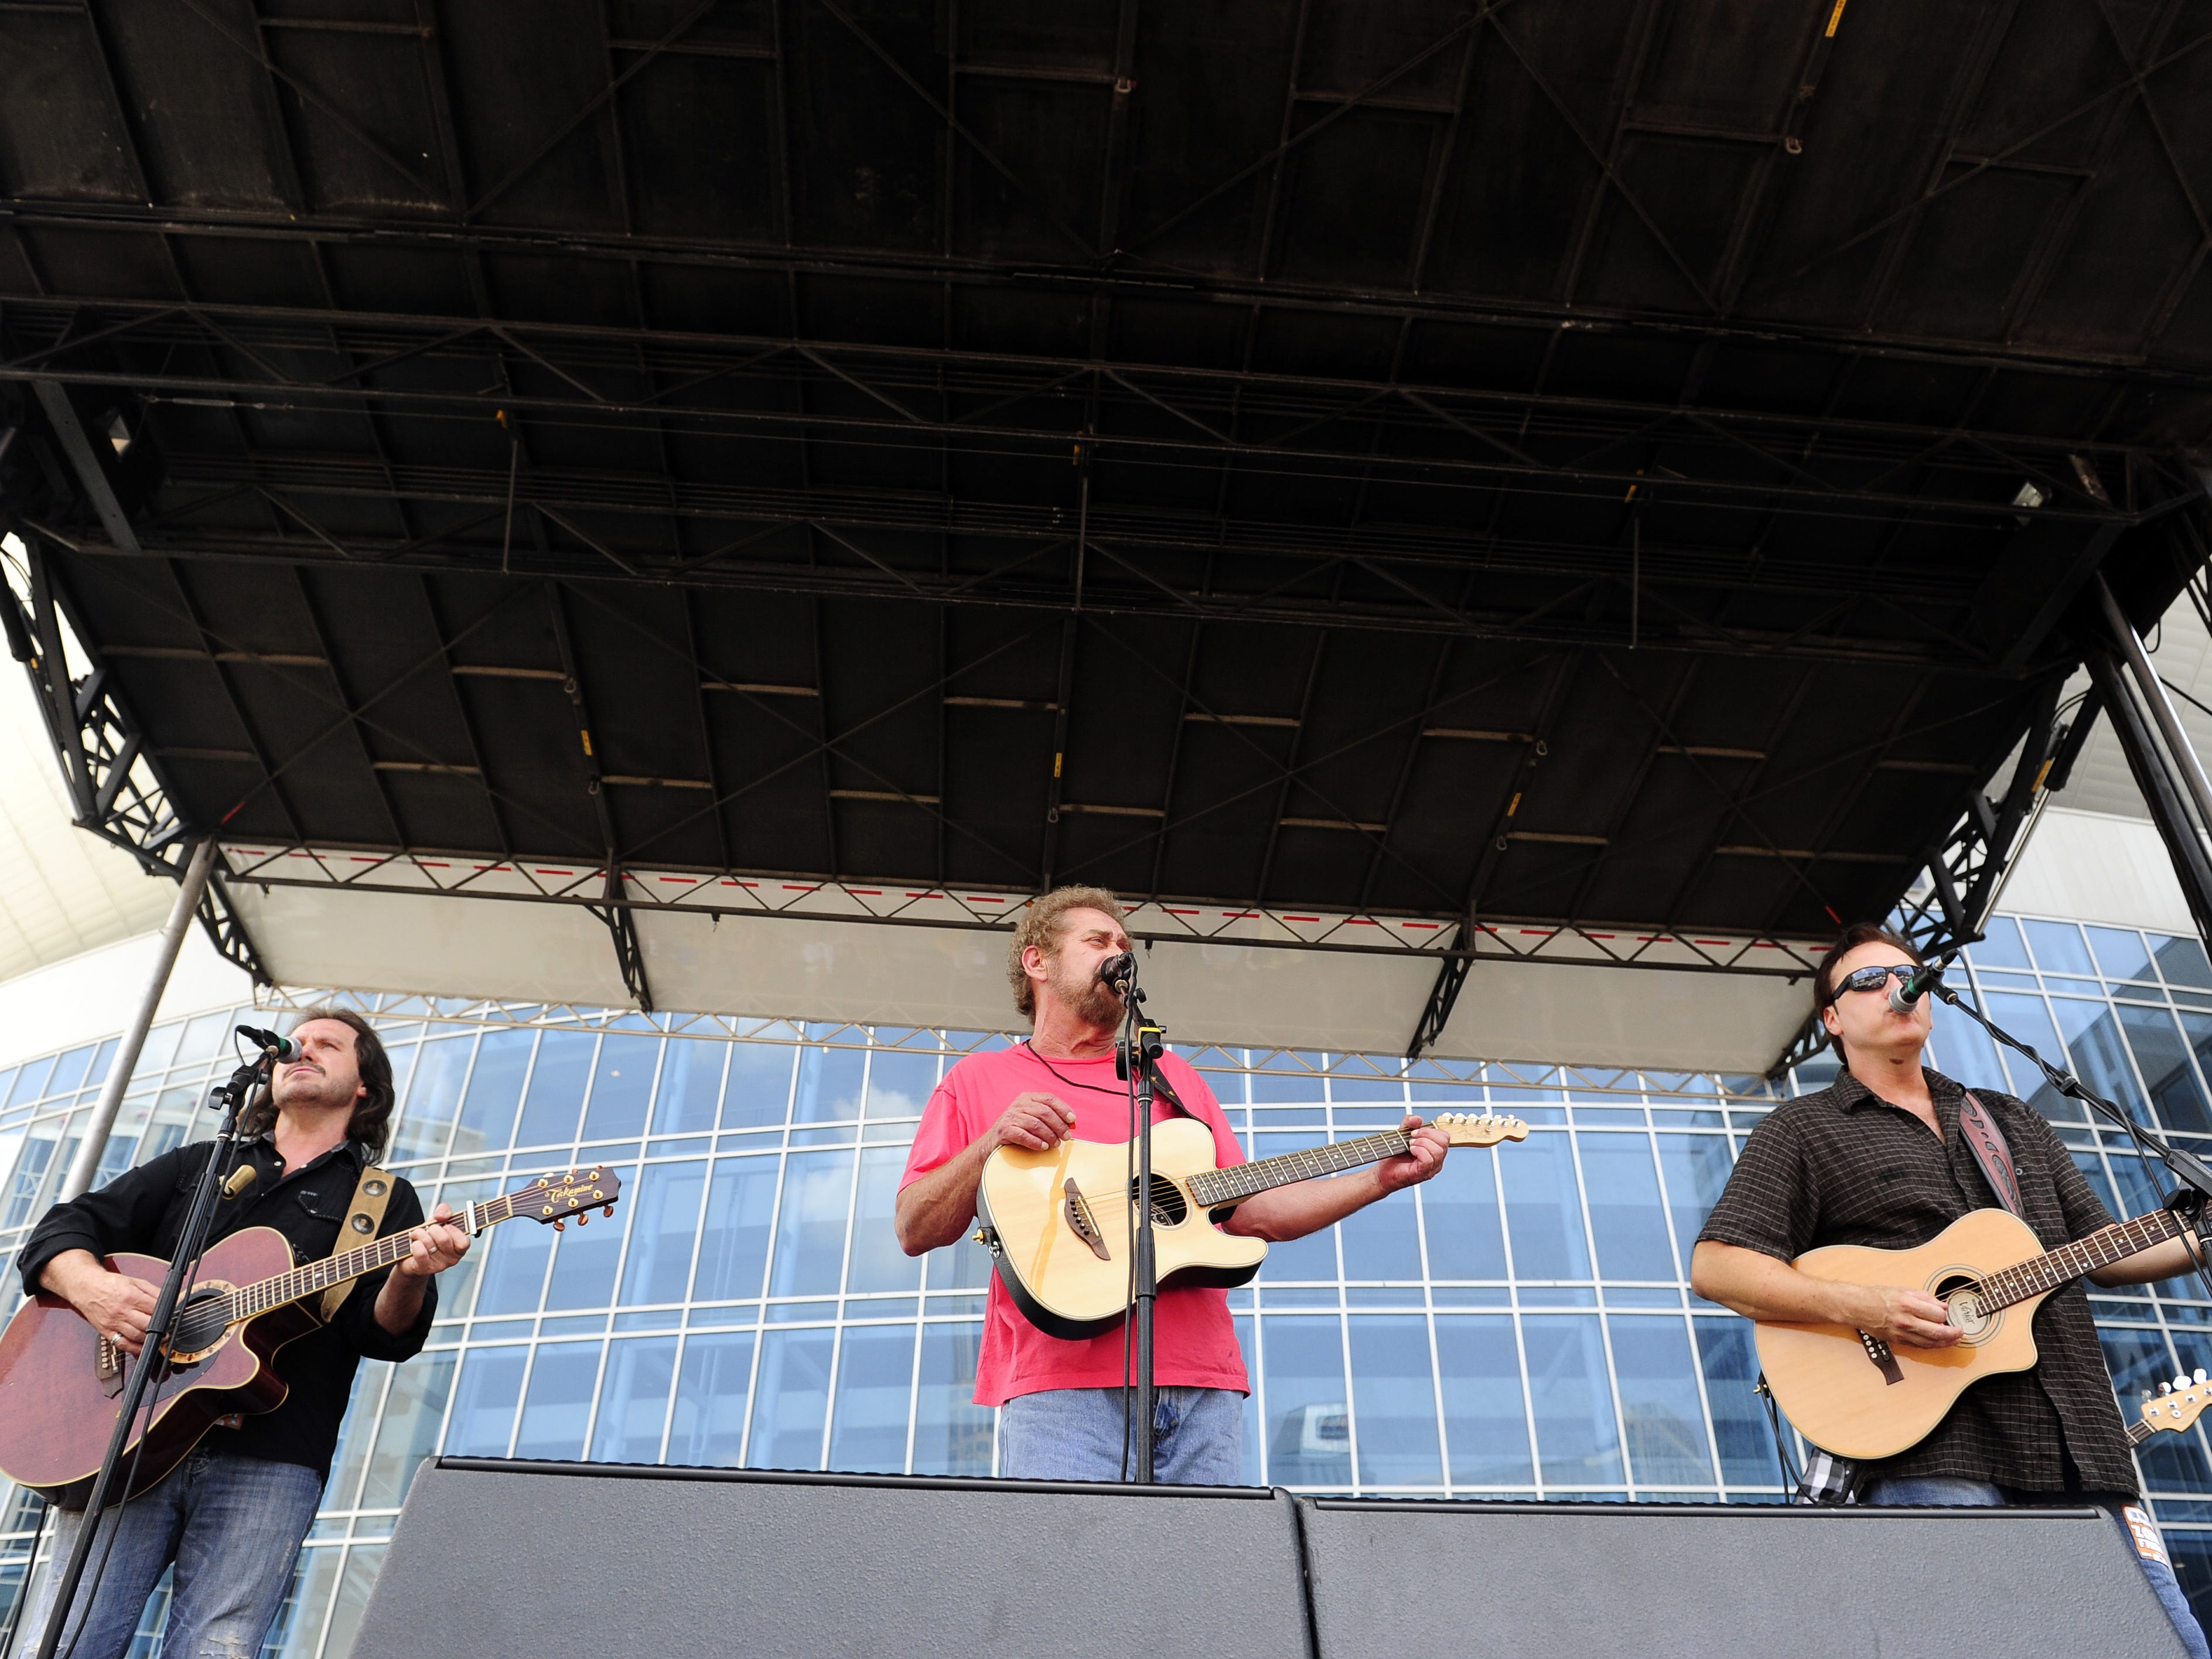 Earl Thomas Conley, center, performs during the CMA Music Festival in downtown Nashville on June 10, 2011.